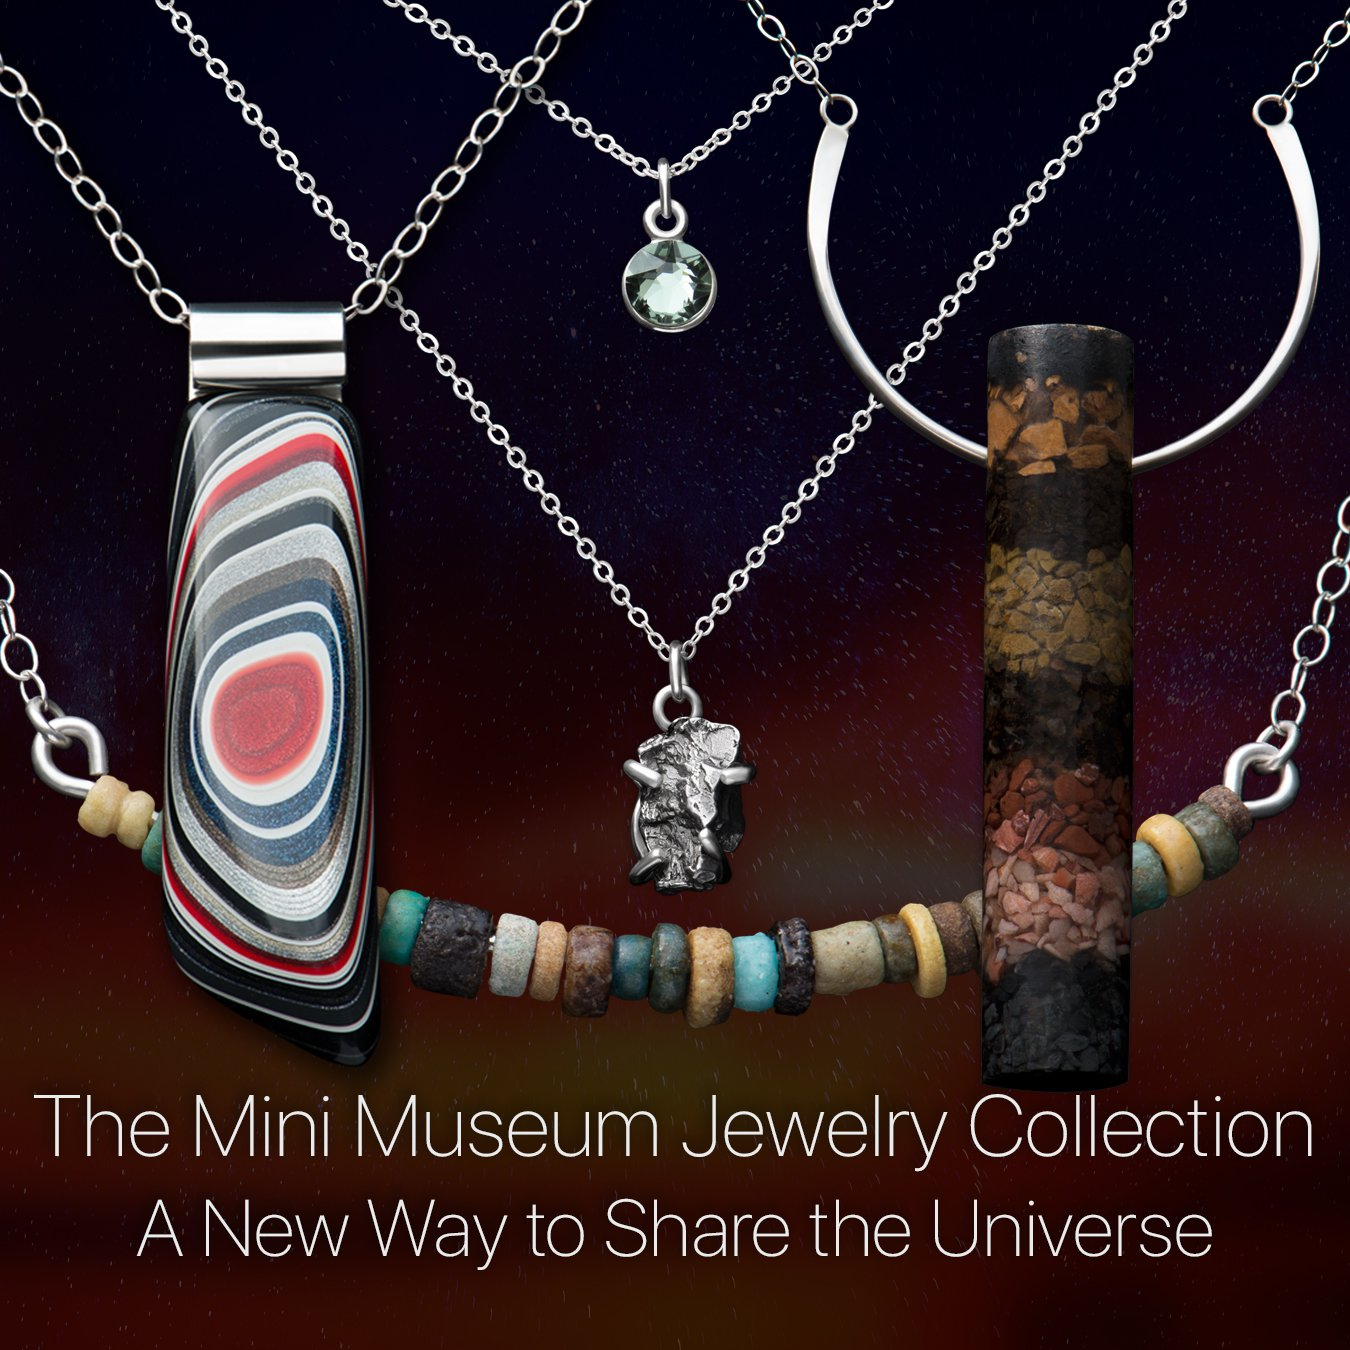 Details about the Mini Museum Jewelry Collection